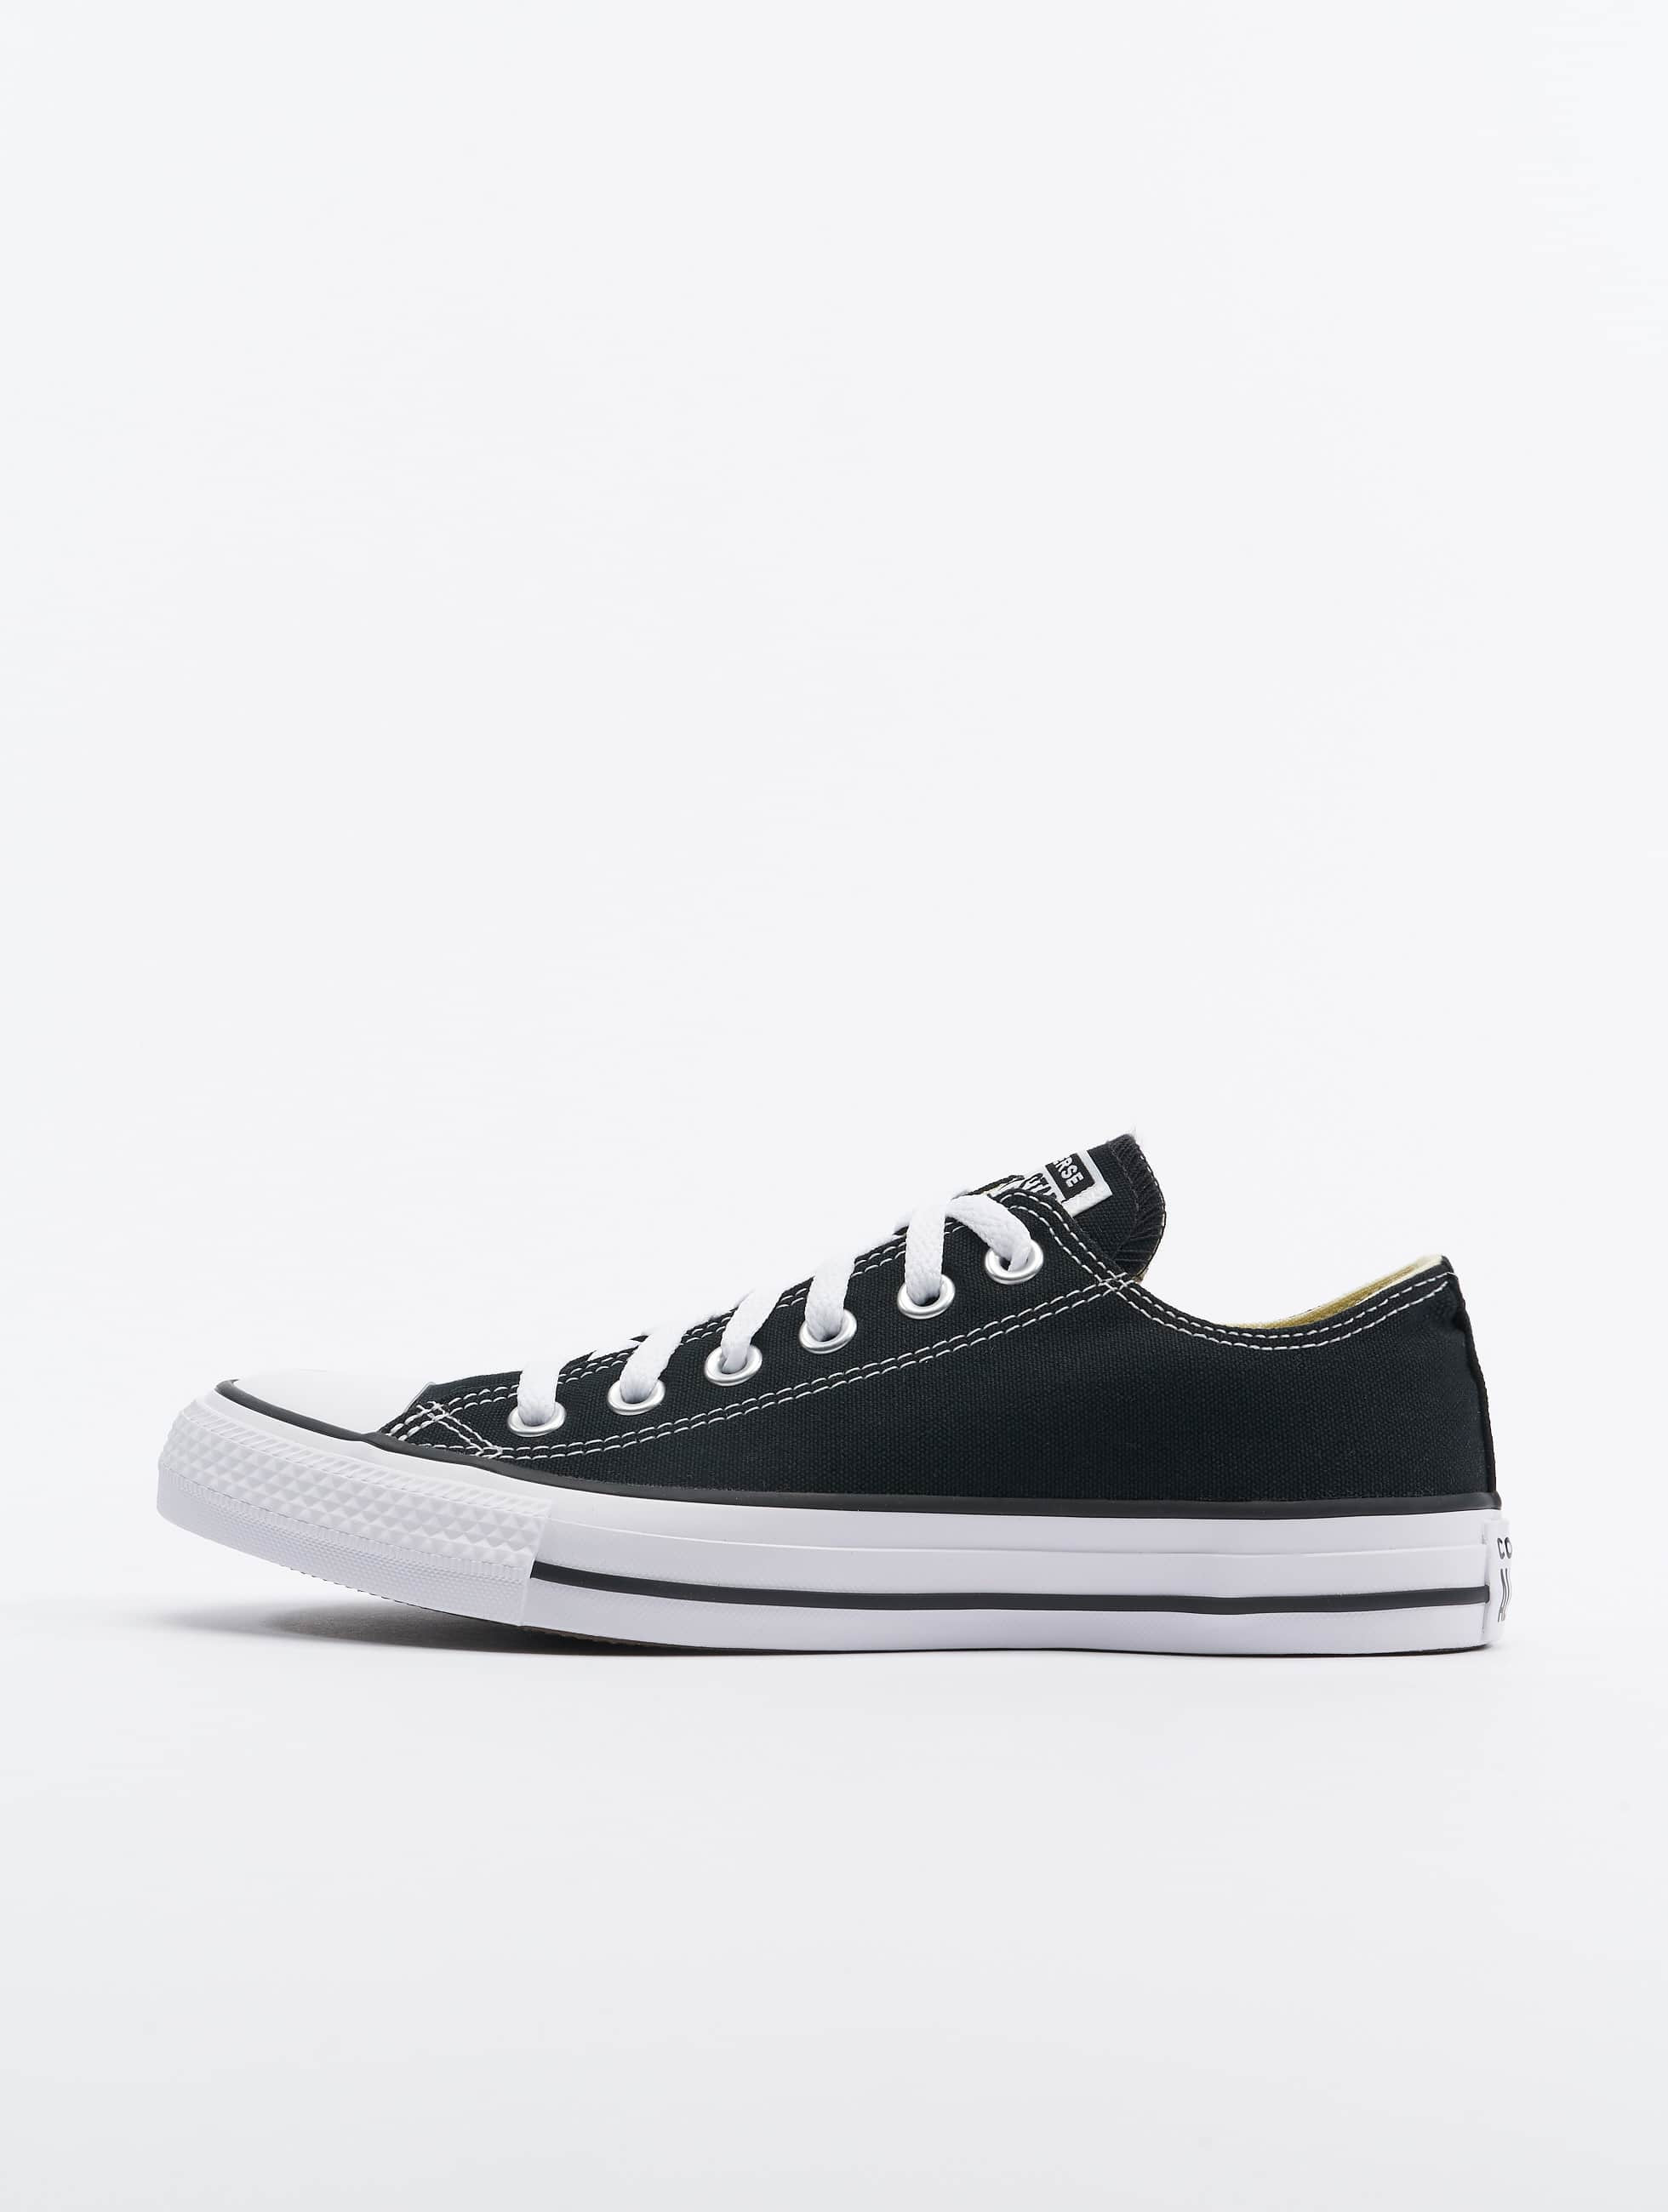 Converse Chaussures / Baskets All Star Ox Canvas Chucks en noir